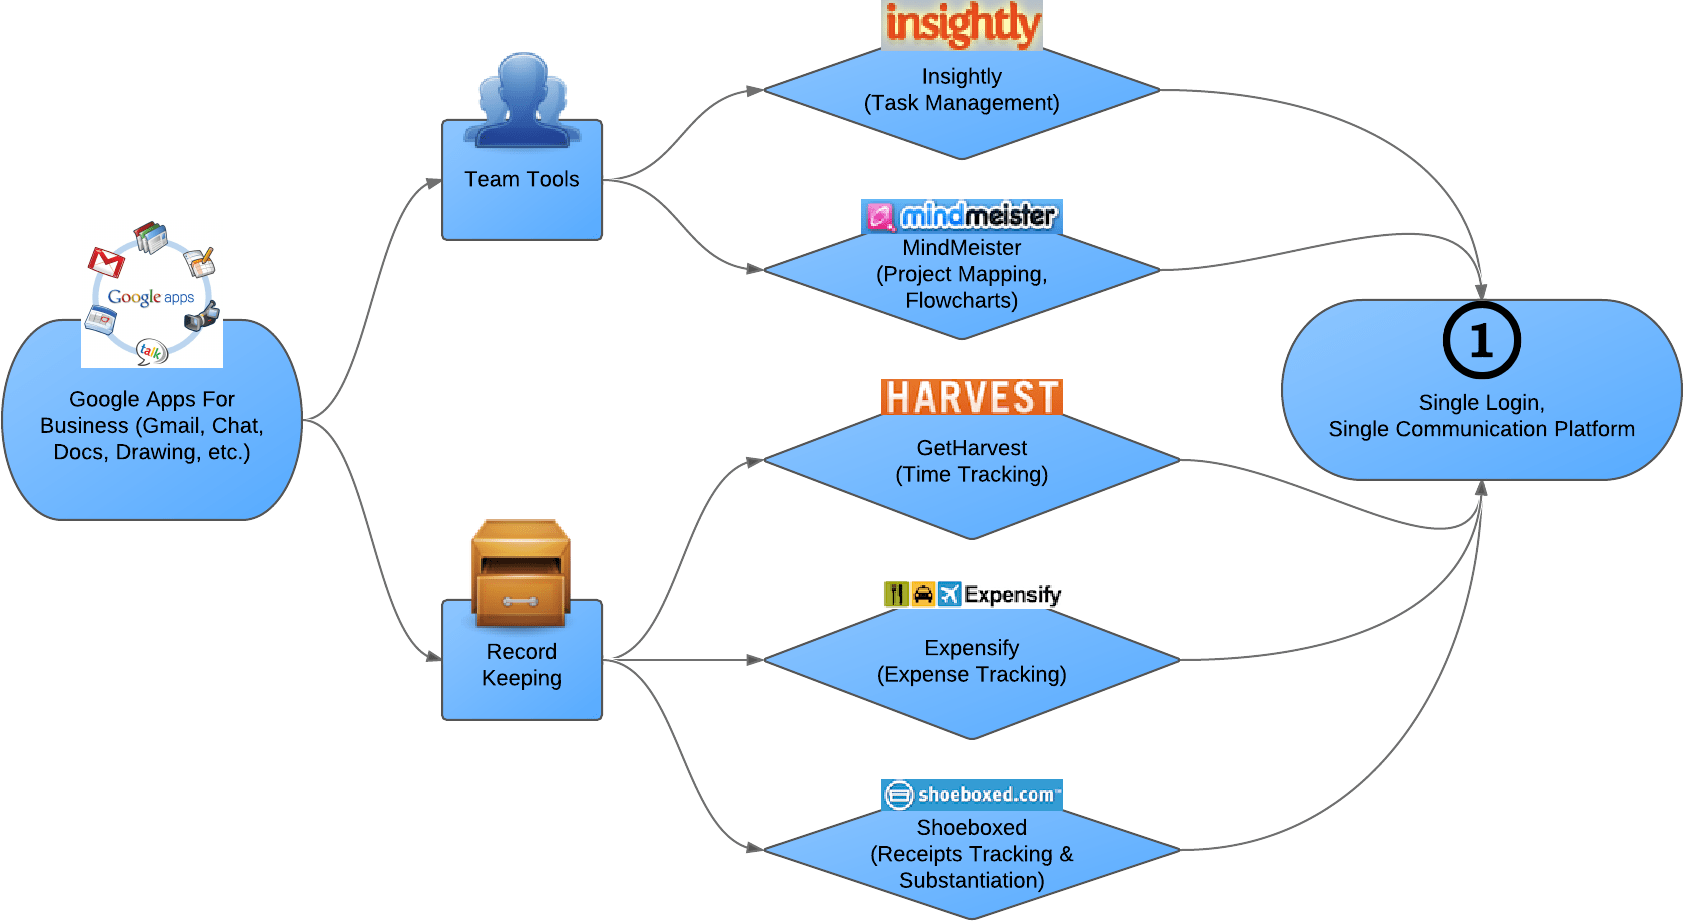 crm workflow diagram different parts of plant google flow chart the for adwords